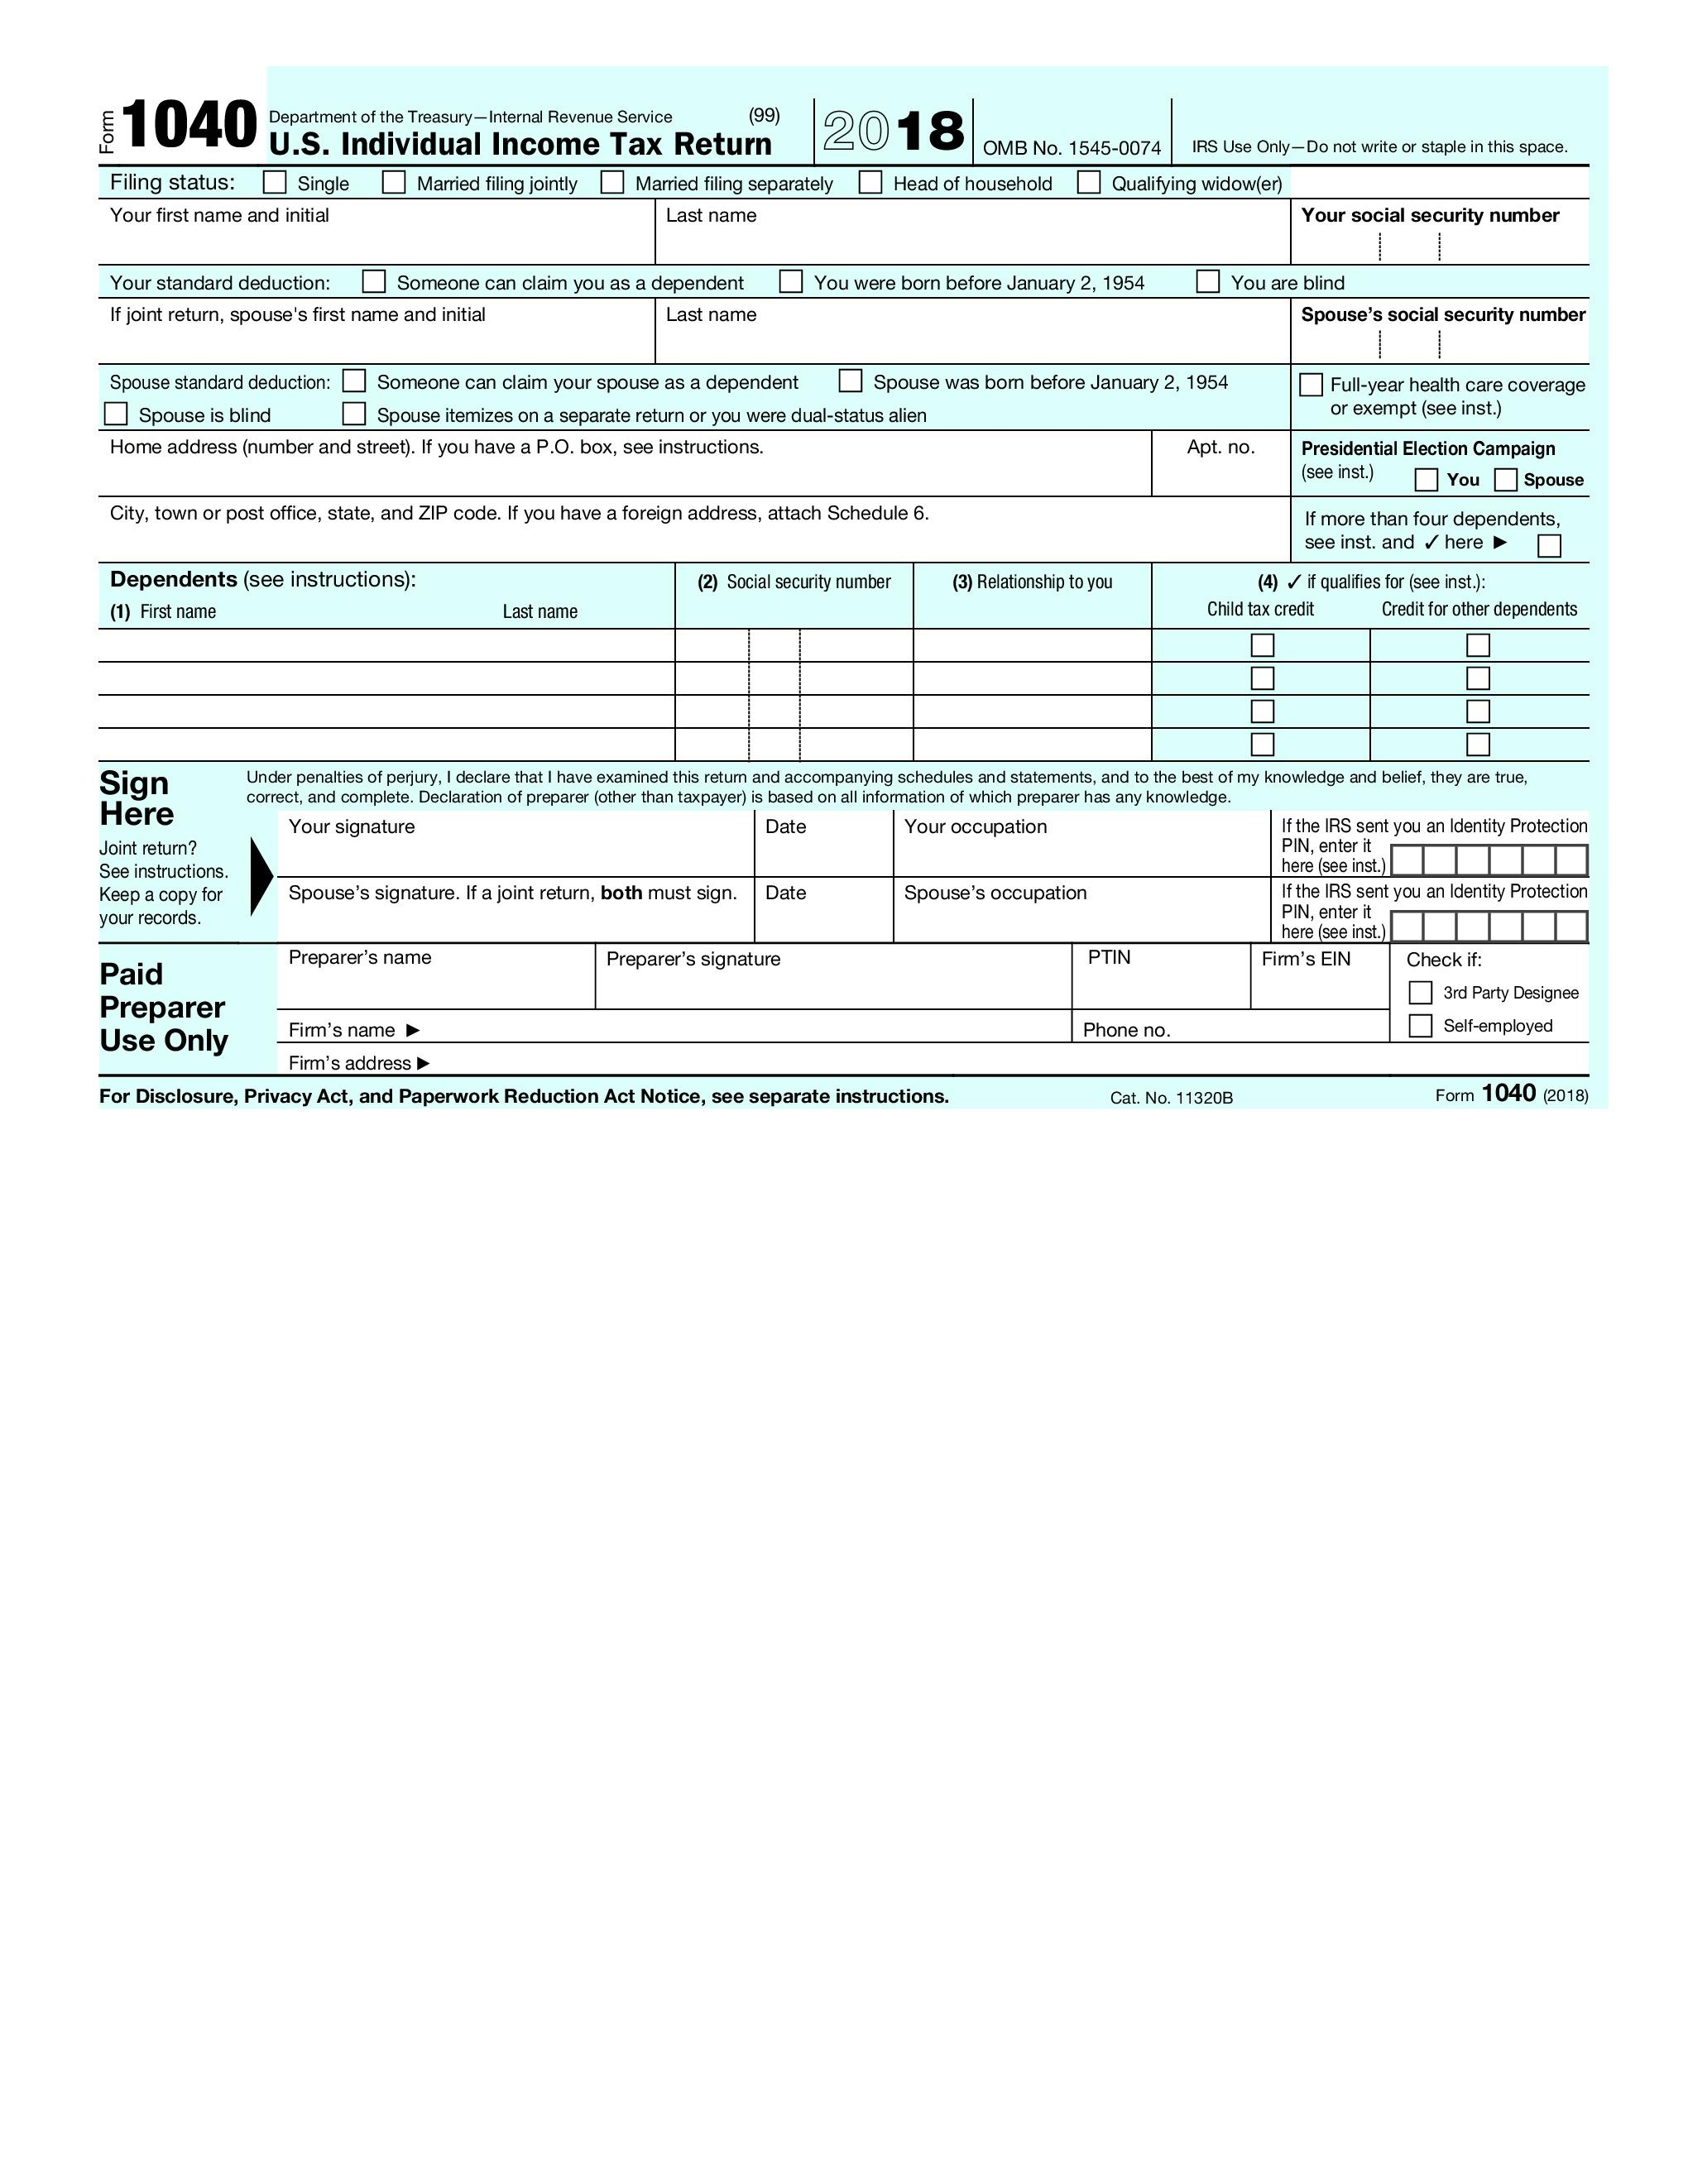 Changes to the 2018 Tax Forms